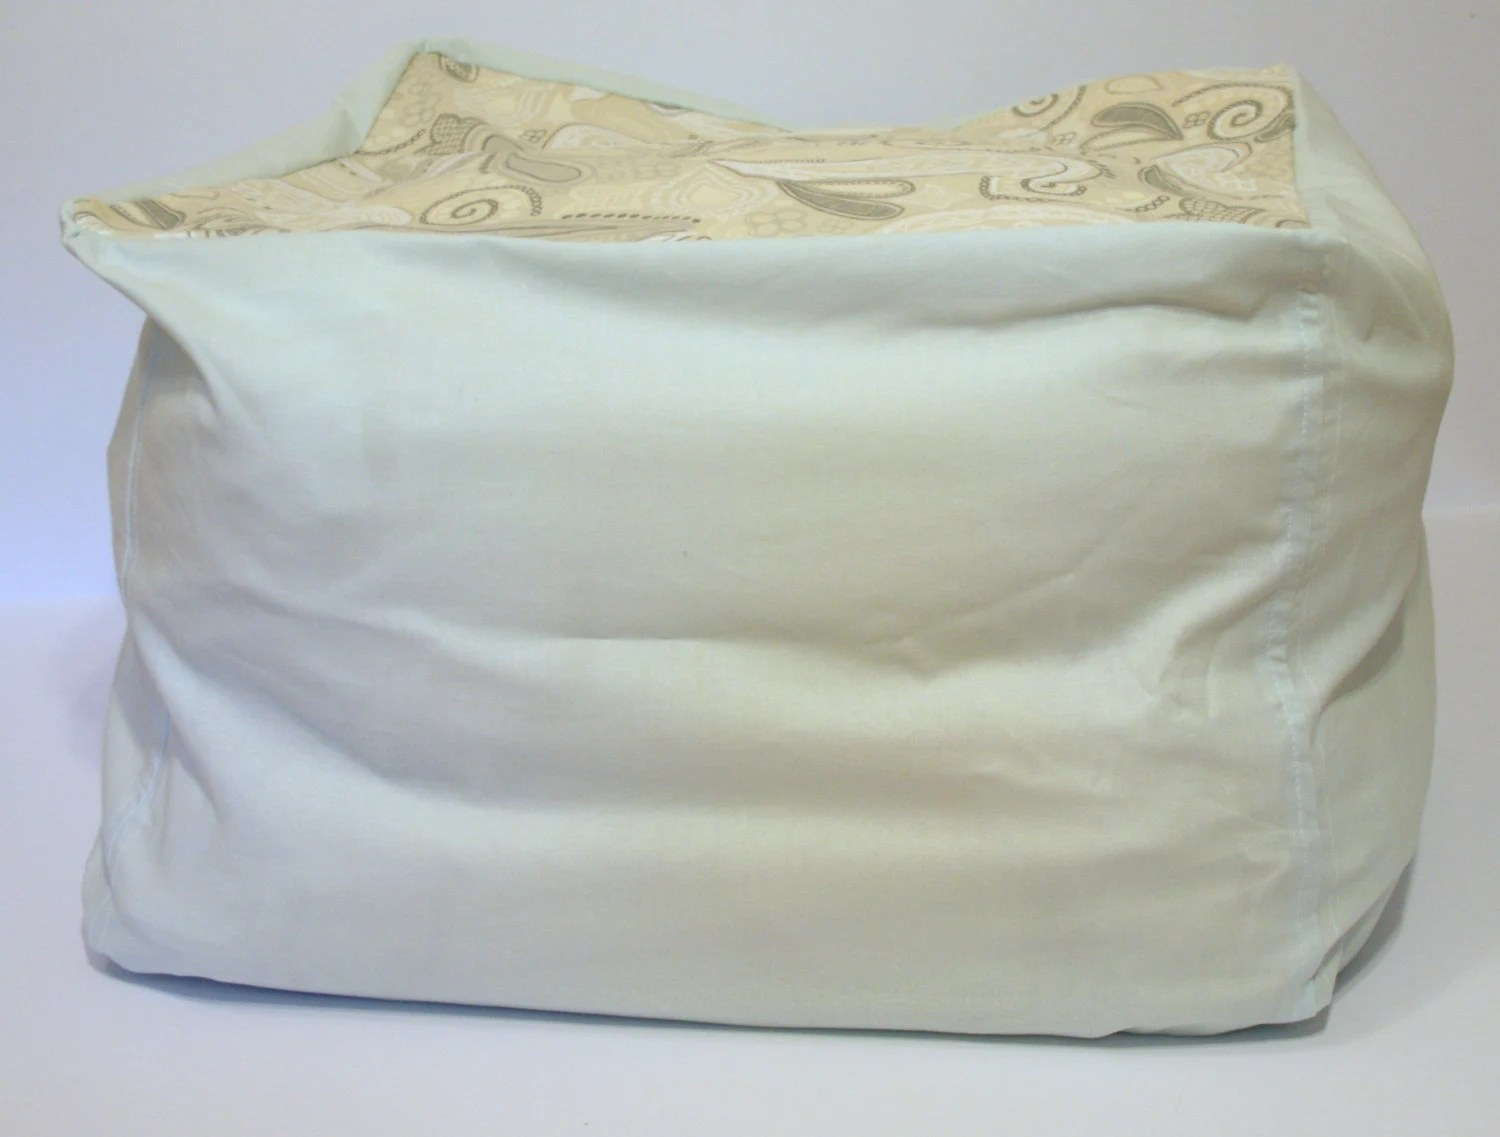 Bean Bag Chair Cover Bean Bag Style Lounge Chair Cover For Stuffed Animals Or